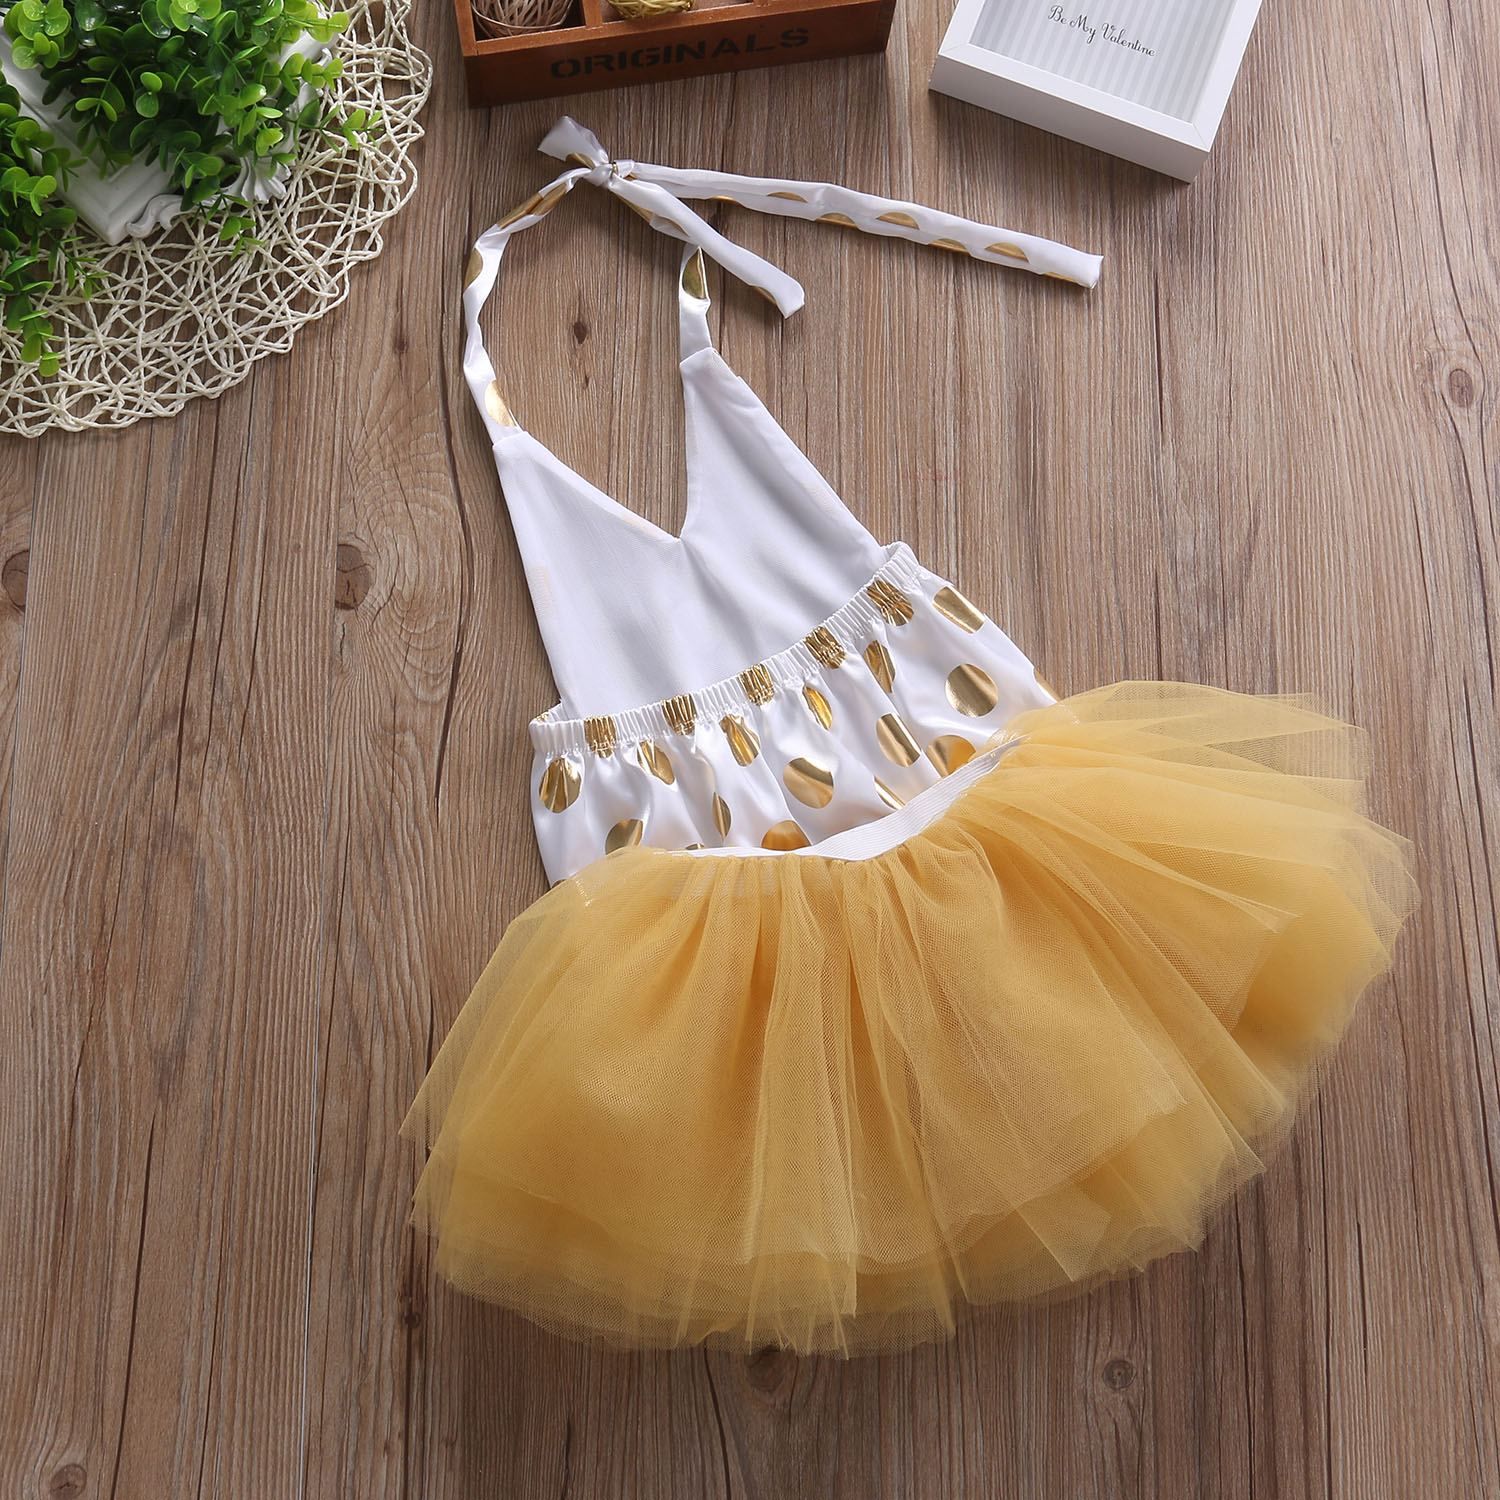 sale products hat gold collections with newborn image bow baby